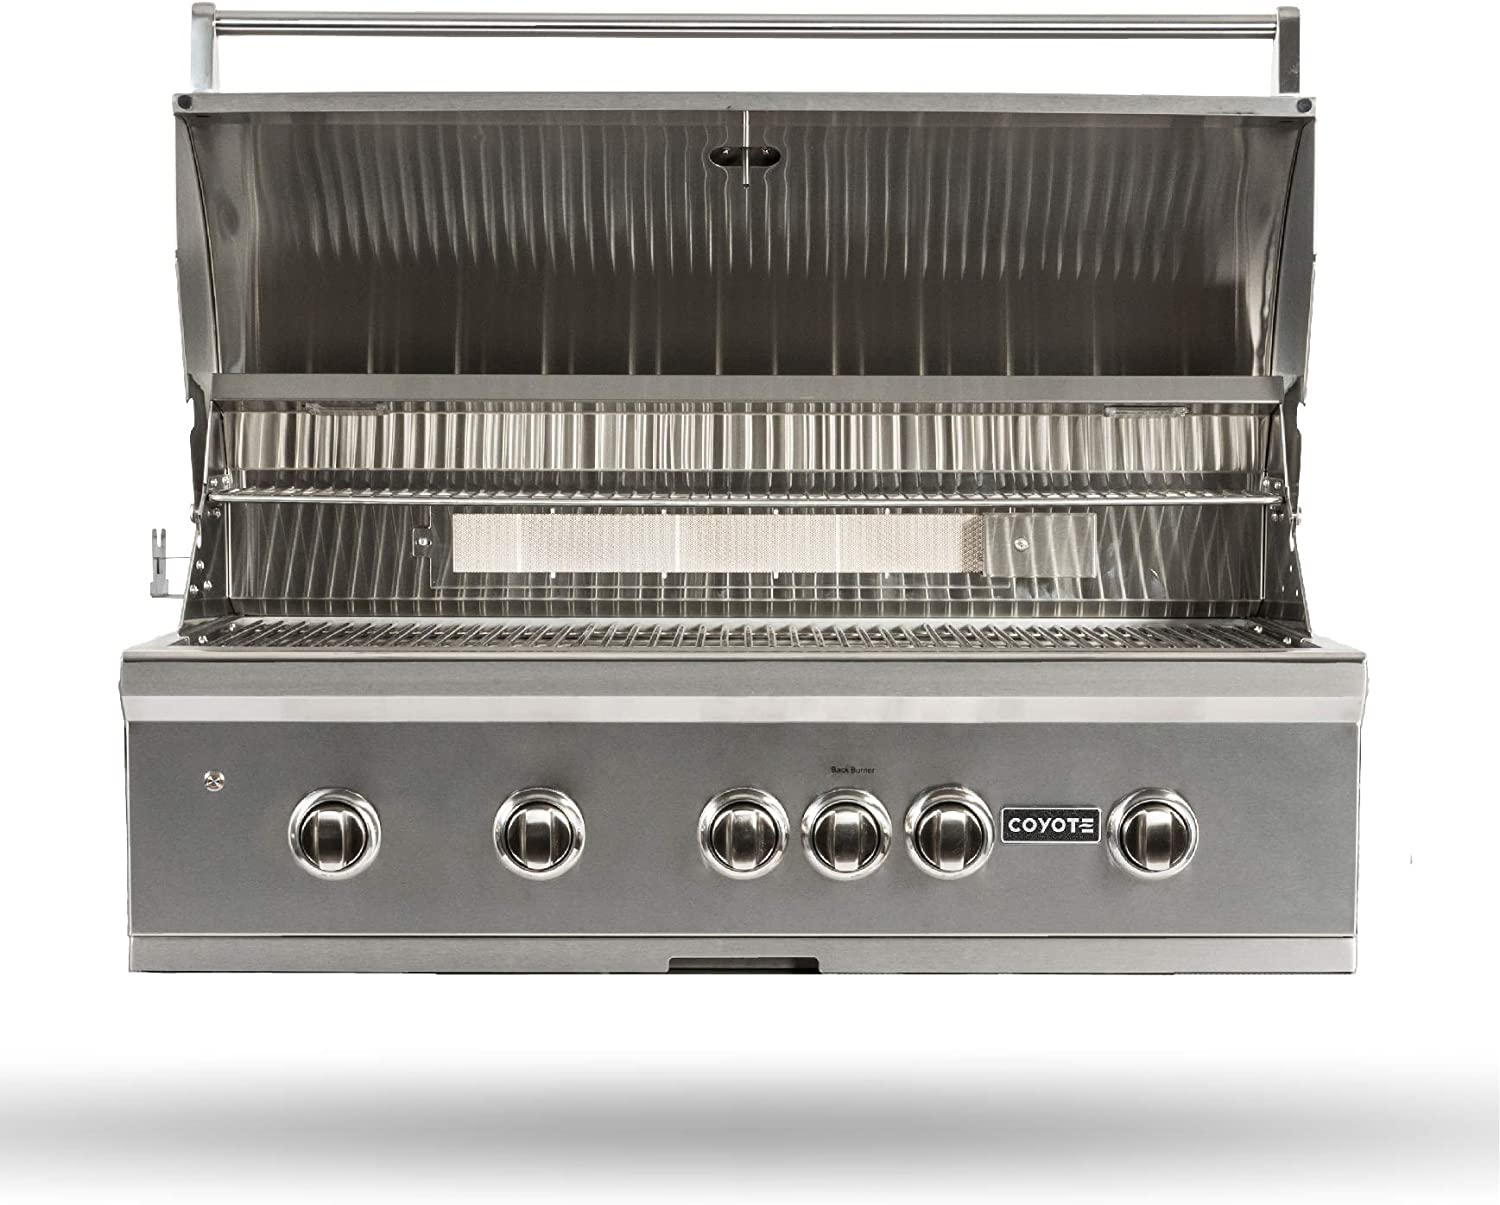 300+ Coyote S Series Propane Gas Grill, 112 in. 112 Burner Built in Grill with  RapidSear Infrared Burner & Rotisserie   C12SL112LP